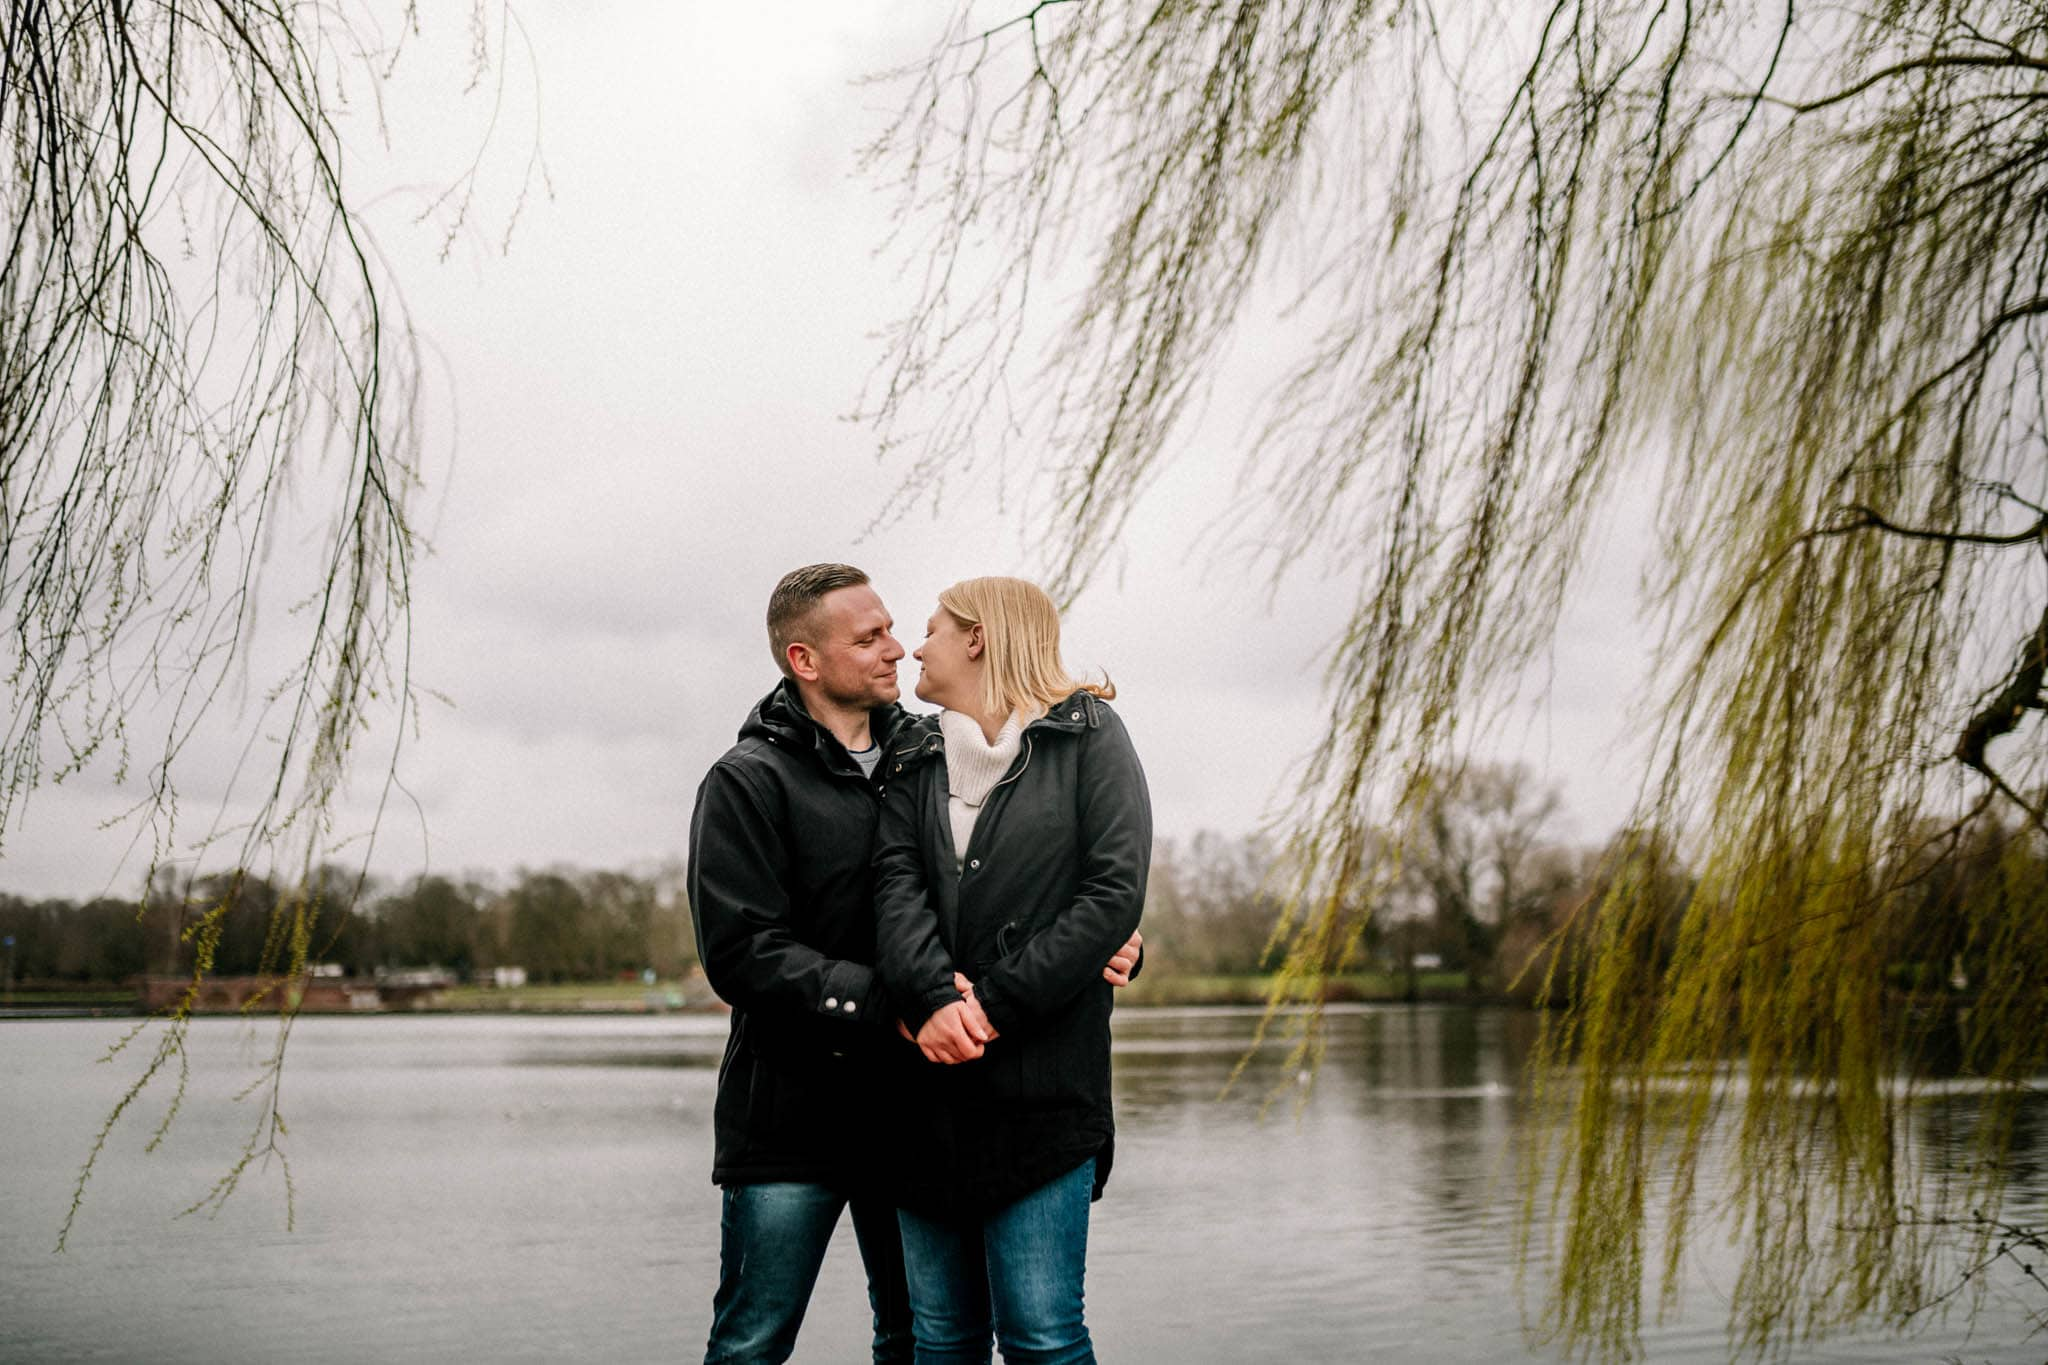 Engagementshooting, Hochzeitsfieber by Photo-Schomburg, Pärchenshoot, Hamburg, Elbe, Hamburger Hafen, Hochzeitsfotograf, Wedding, Coupleshoot, Hochzeitsfotografie-5-16